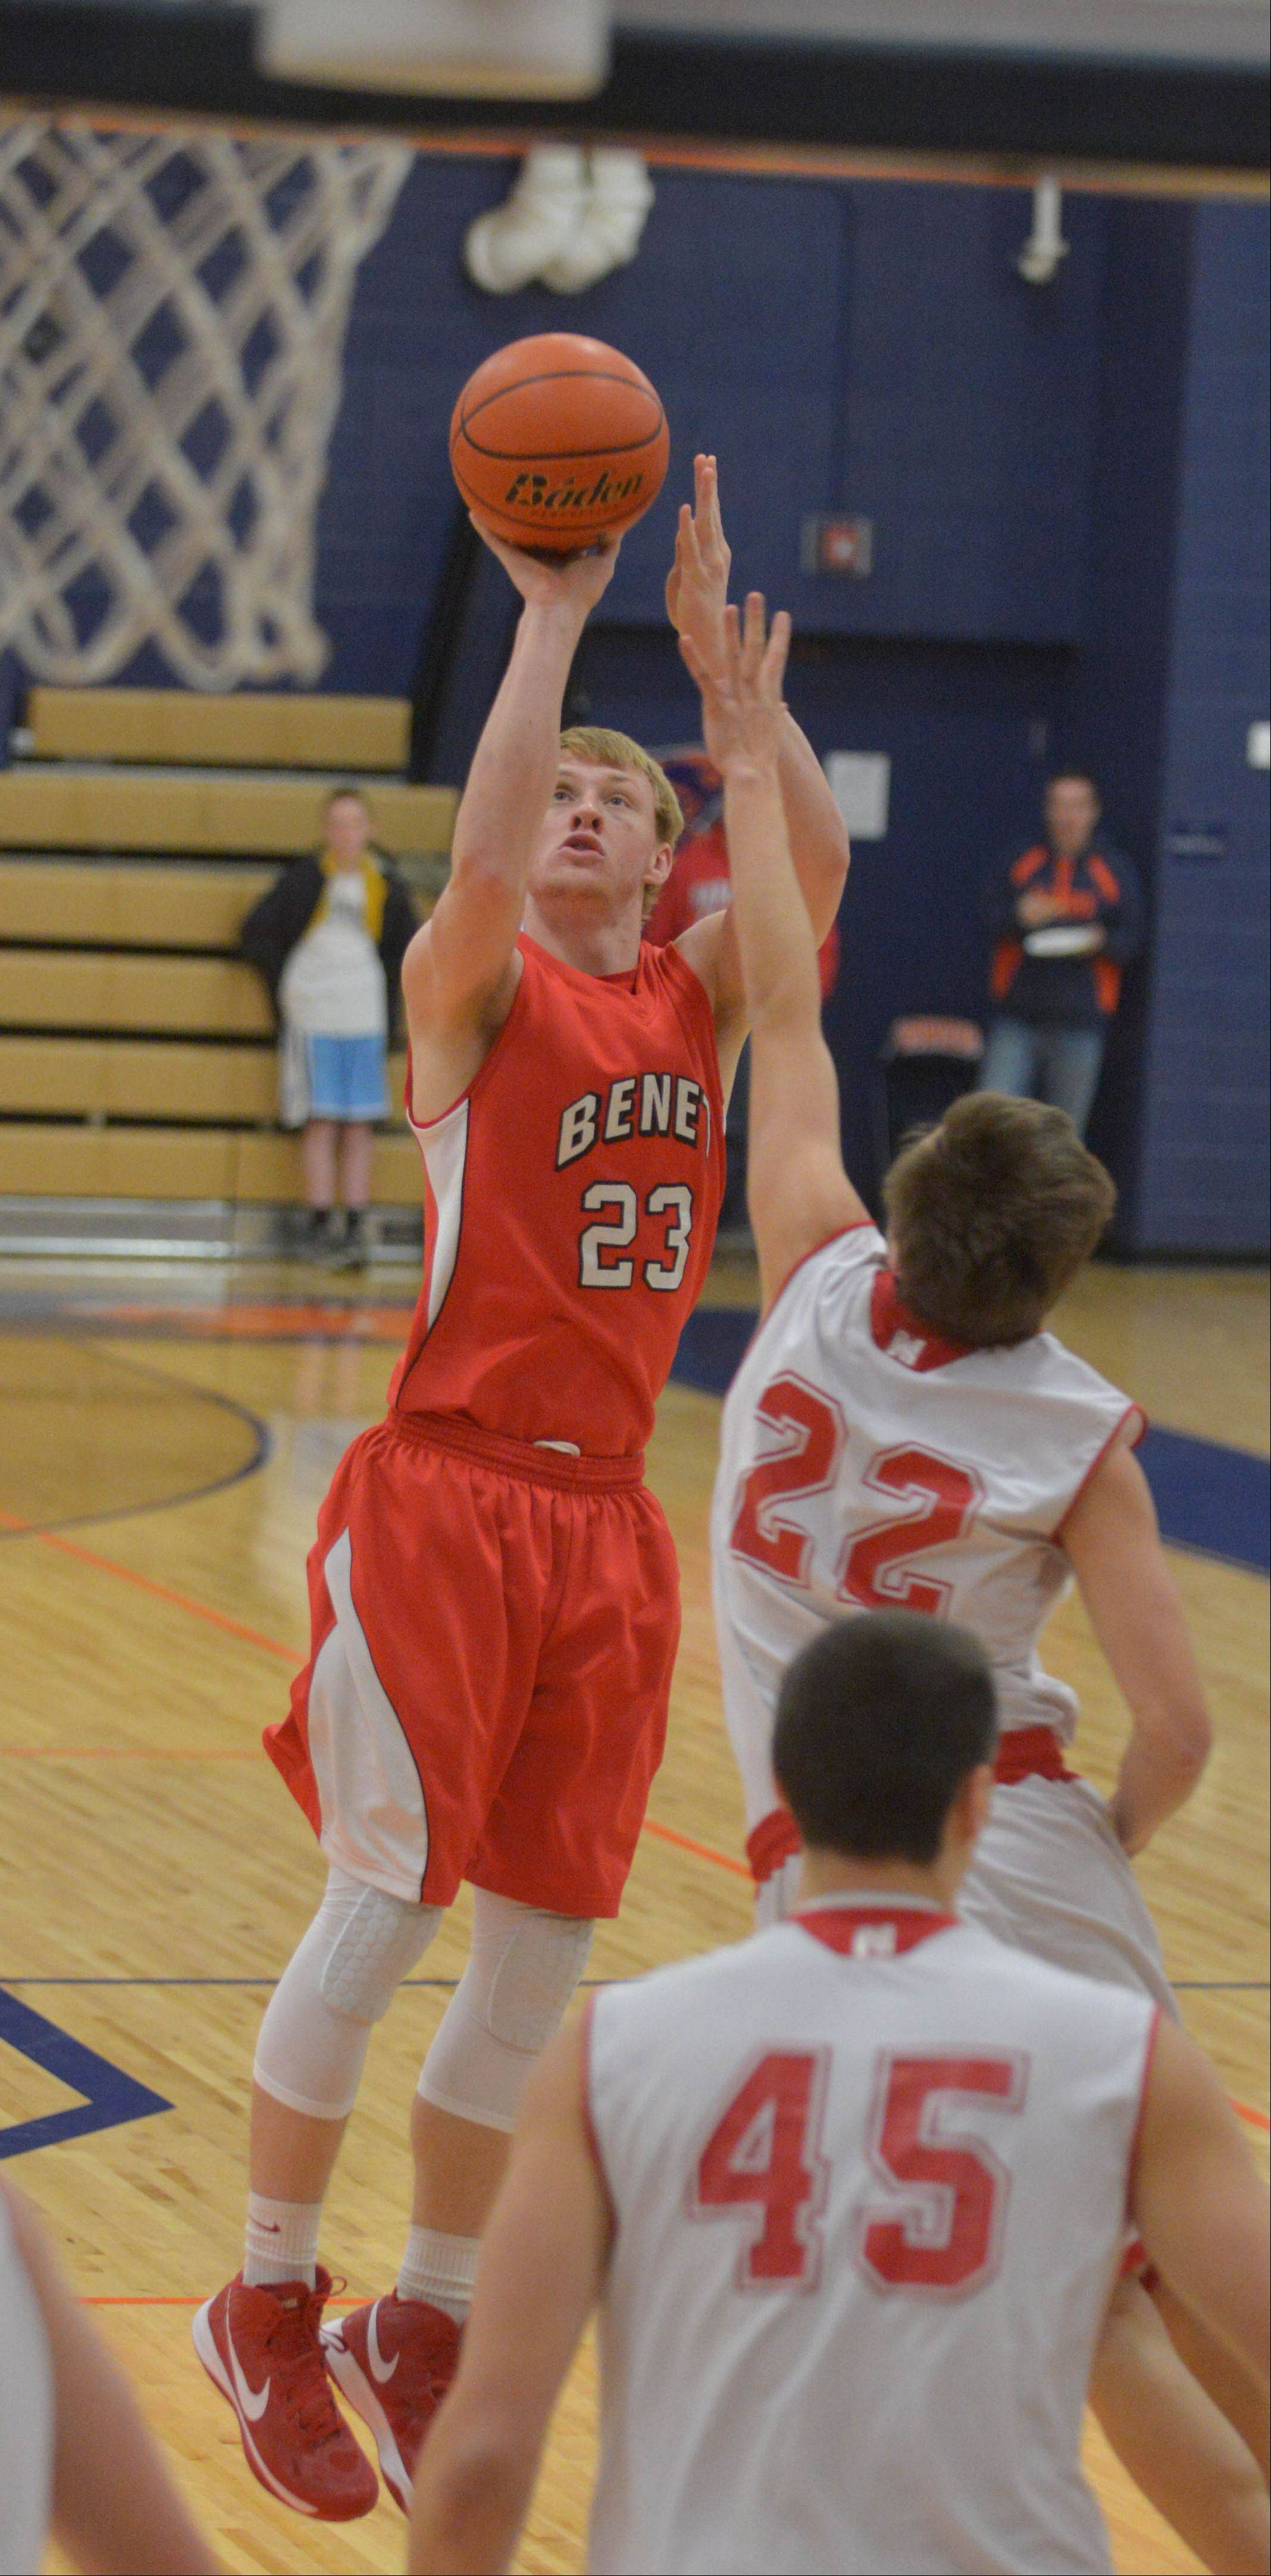 Colin Bonnett of Benet takes a shot during the Hoops for Healing boys basketball championship game Saturday.